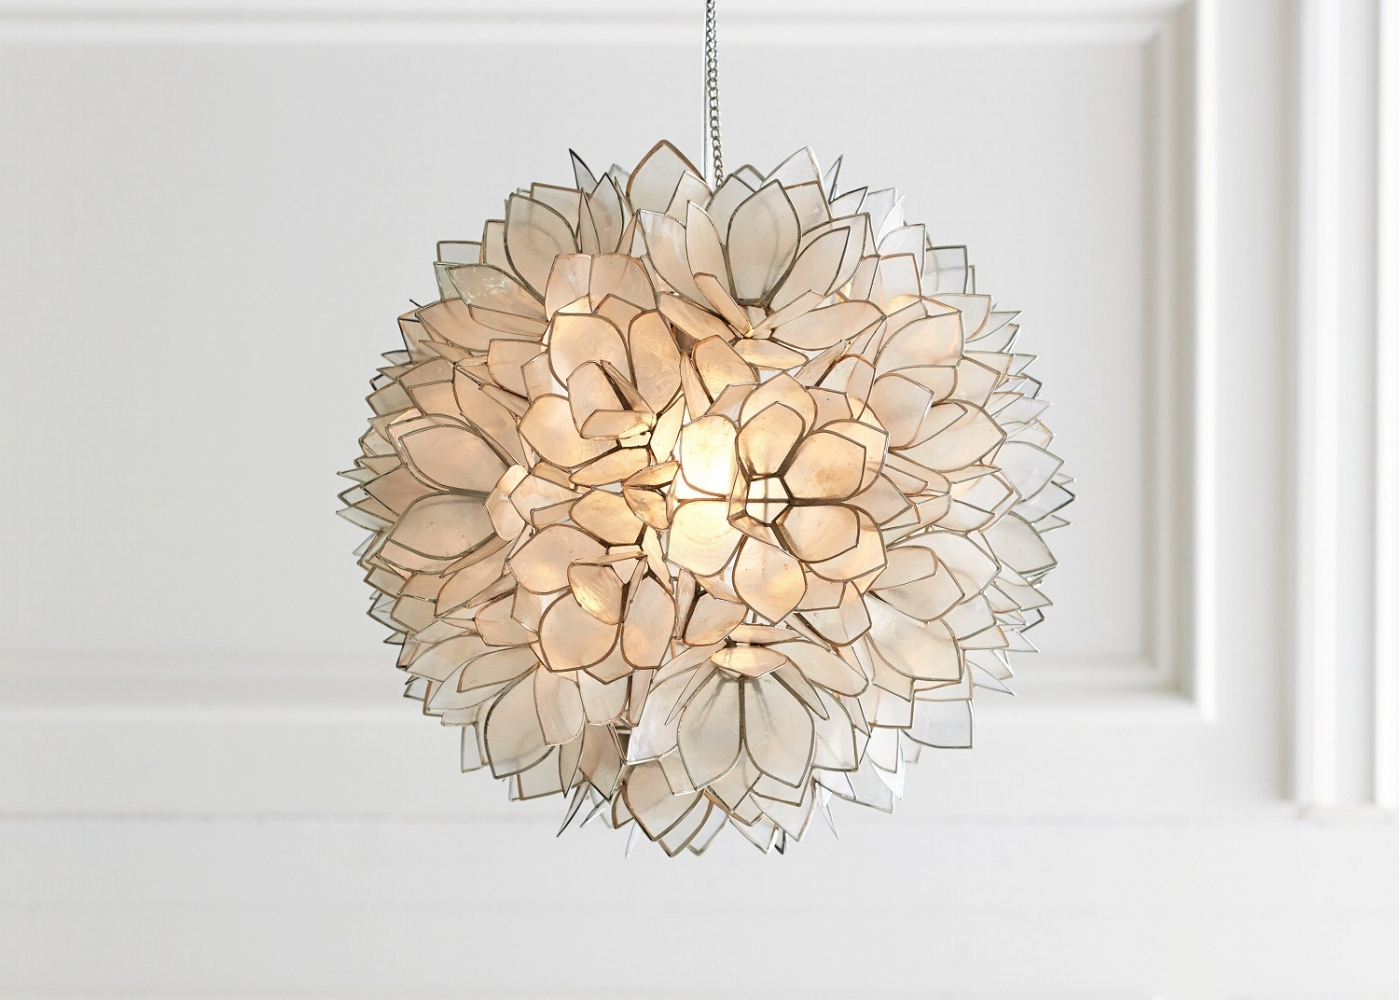 Pick out a favorite accessory like this capiz pendant with hundreds of shell petals from a luminous lotus flower. Photo: courtesy of Pottery Barn.